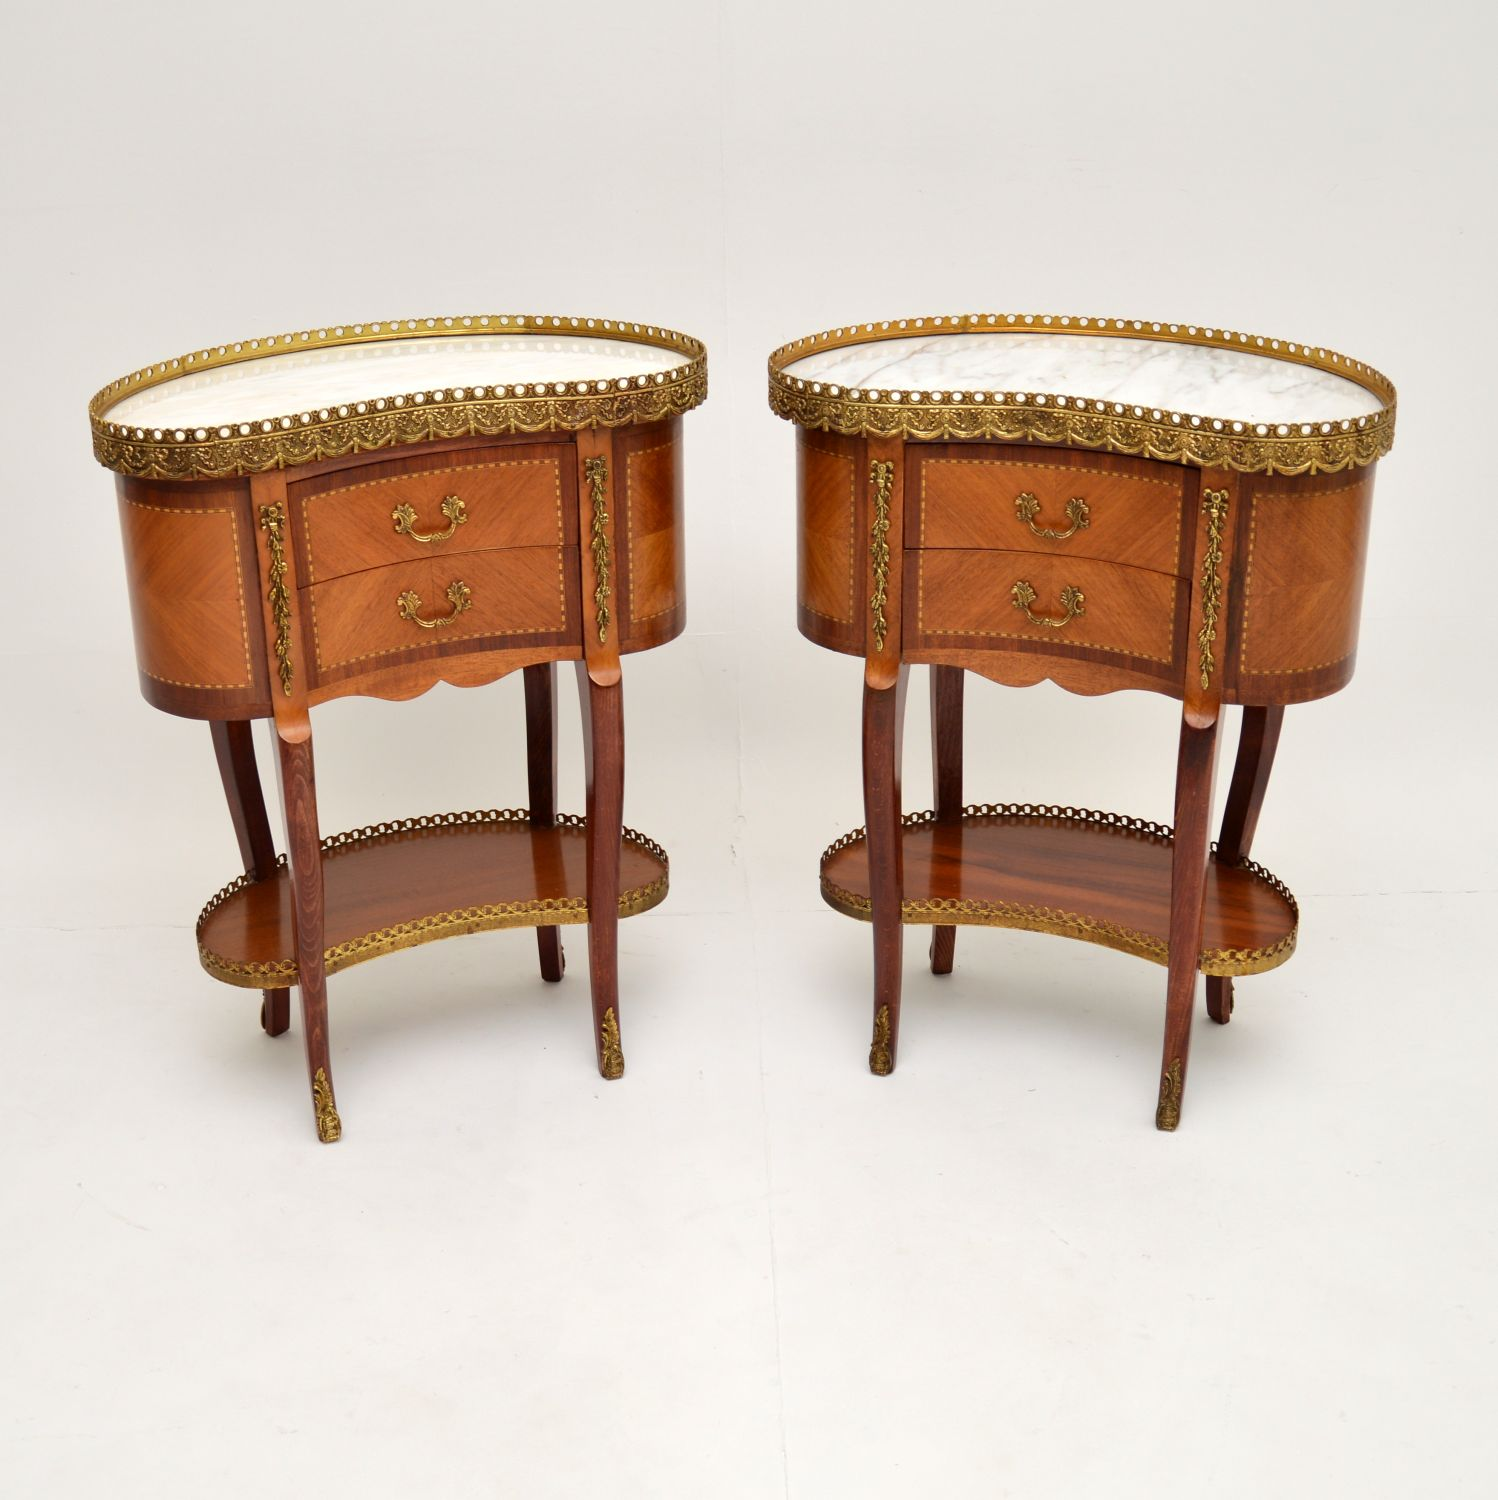 pair of antique french marble top kidney side tables bedside cabinets chests